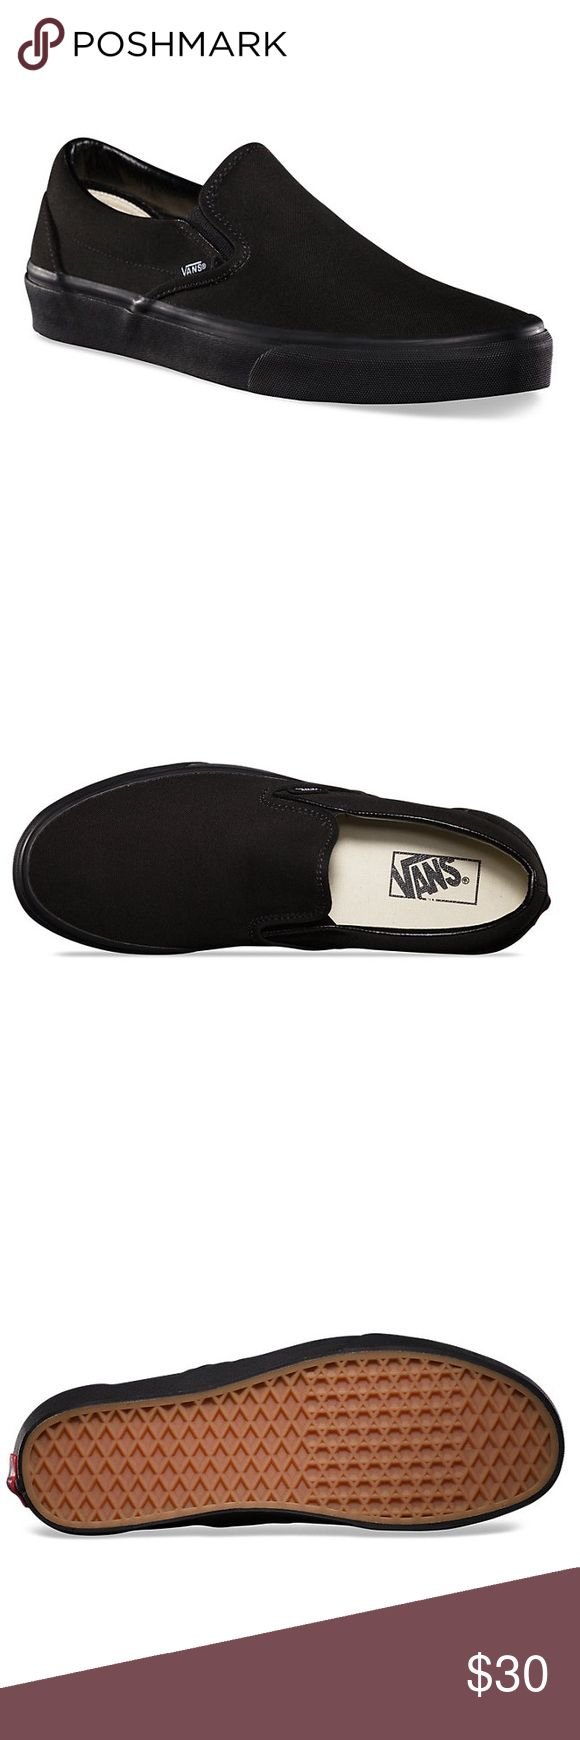 All Black Slip-On Vans Vans The Canvas Classic Slip-on has a low profile, slip-on canvas upper with elastic side accents, Vans flag label and Vans original Waffle Outsole. In nearly perfect condition. Super comfortable and casual. Vans Shoes Sneakers